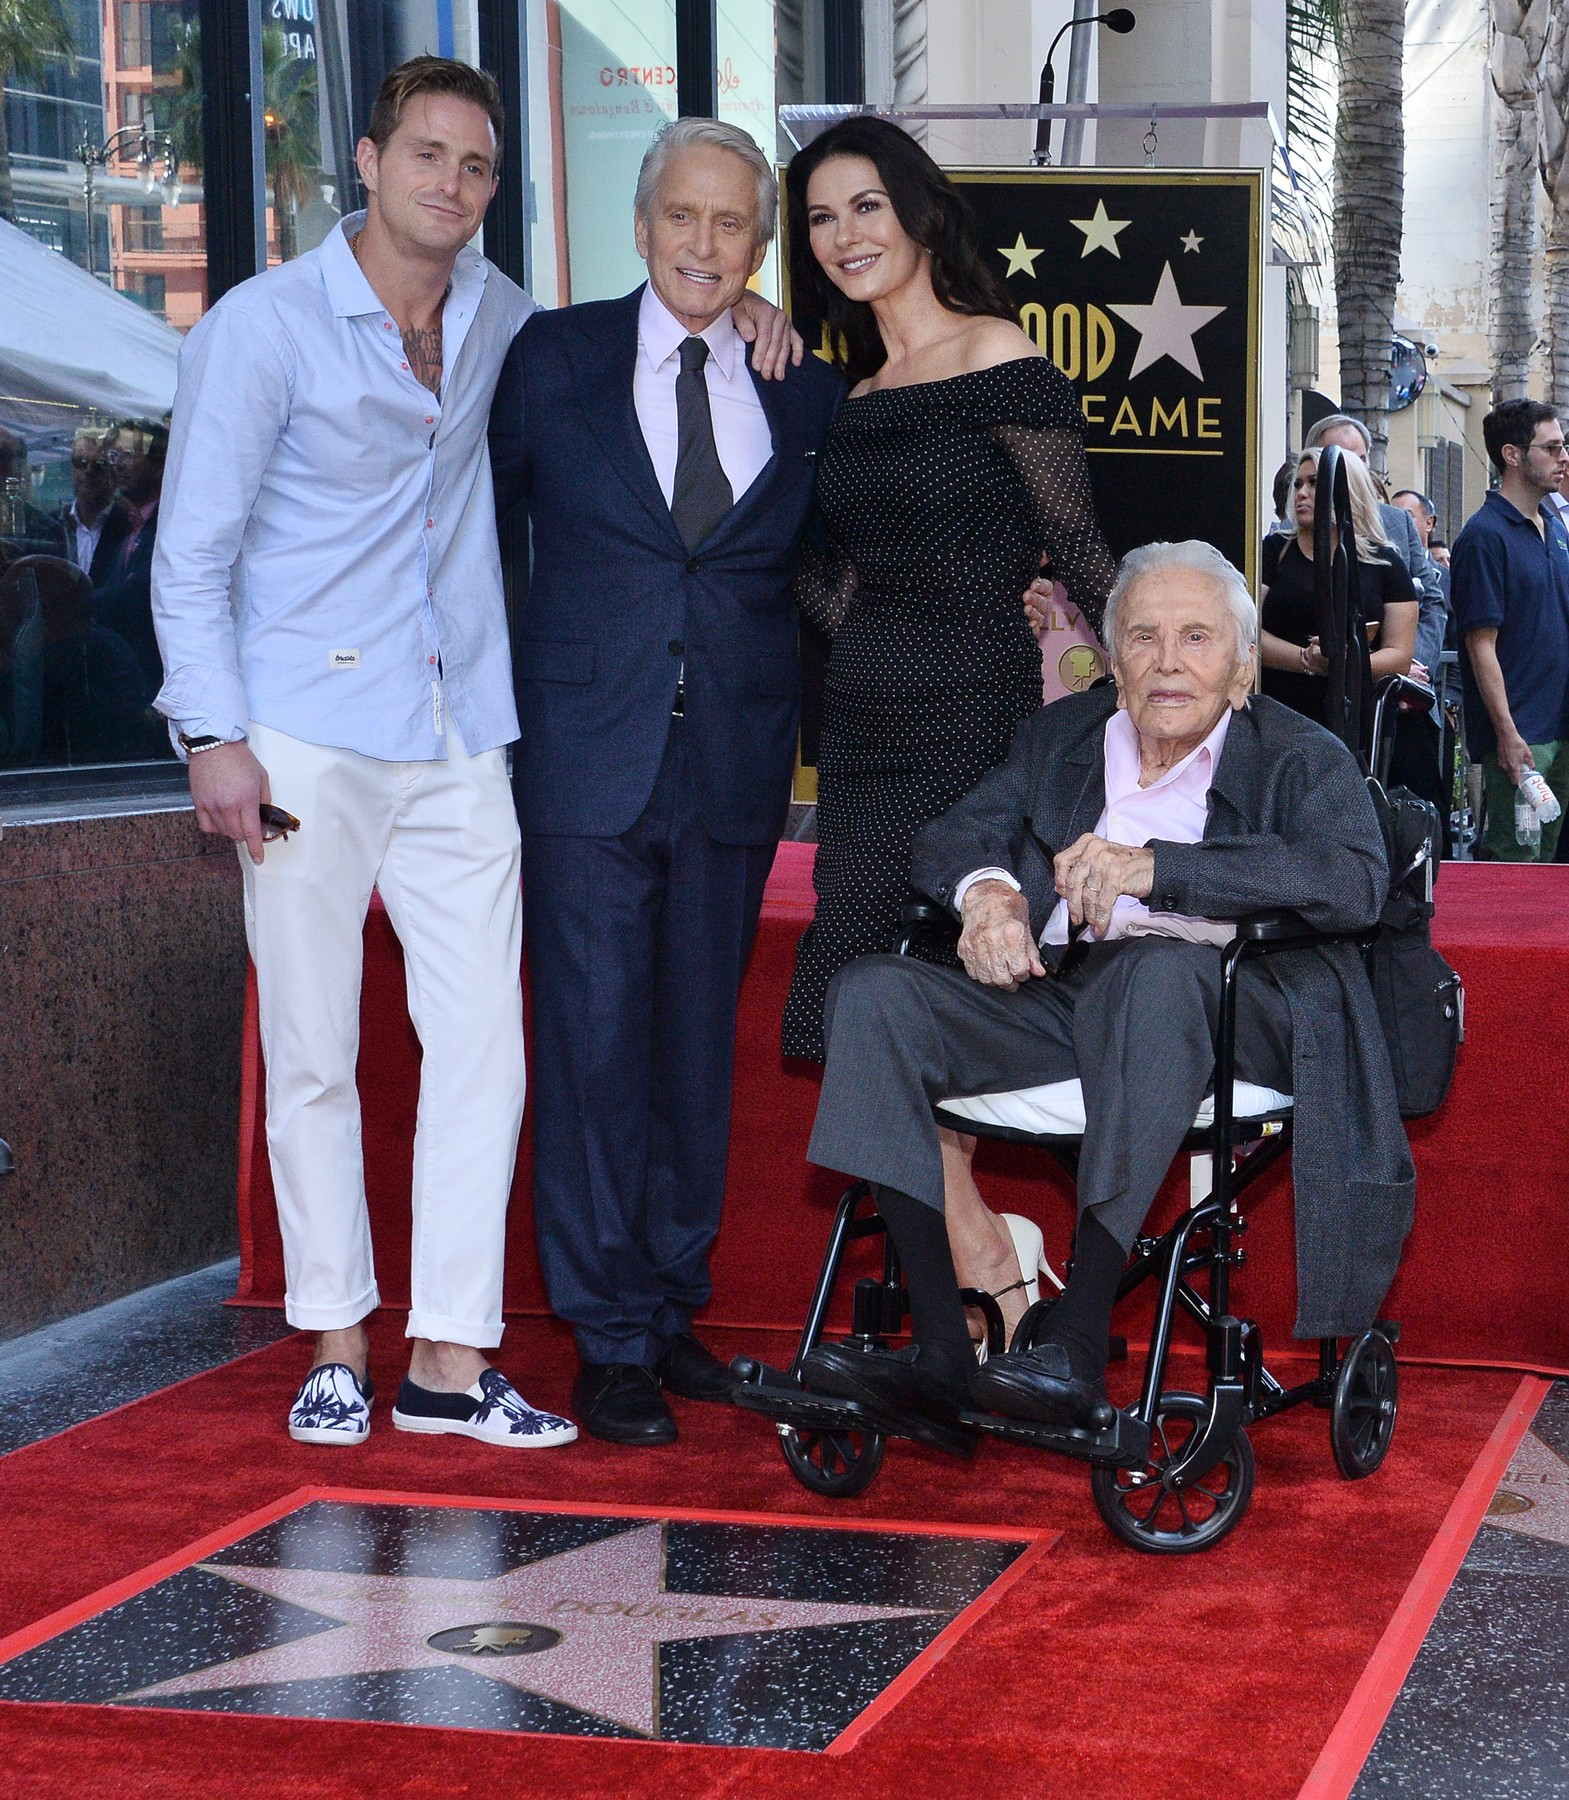 Actor Michael Douglas is joined by his son Cameron, wife, actress Catherine Zeta-Jones and father, actor Kirk Douglas (L-R) during an unveiling ceremony honoring him with the 2,648th star on the Hollywood Walk of Fame in Los Angeles on November 6, 2018. Photo by /UPI, Image: 394416663, License: Rights-managed, Restrictions: , Model Release: no, Credit line: JIM RUYMEN / UPI / Profimedia